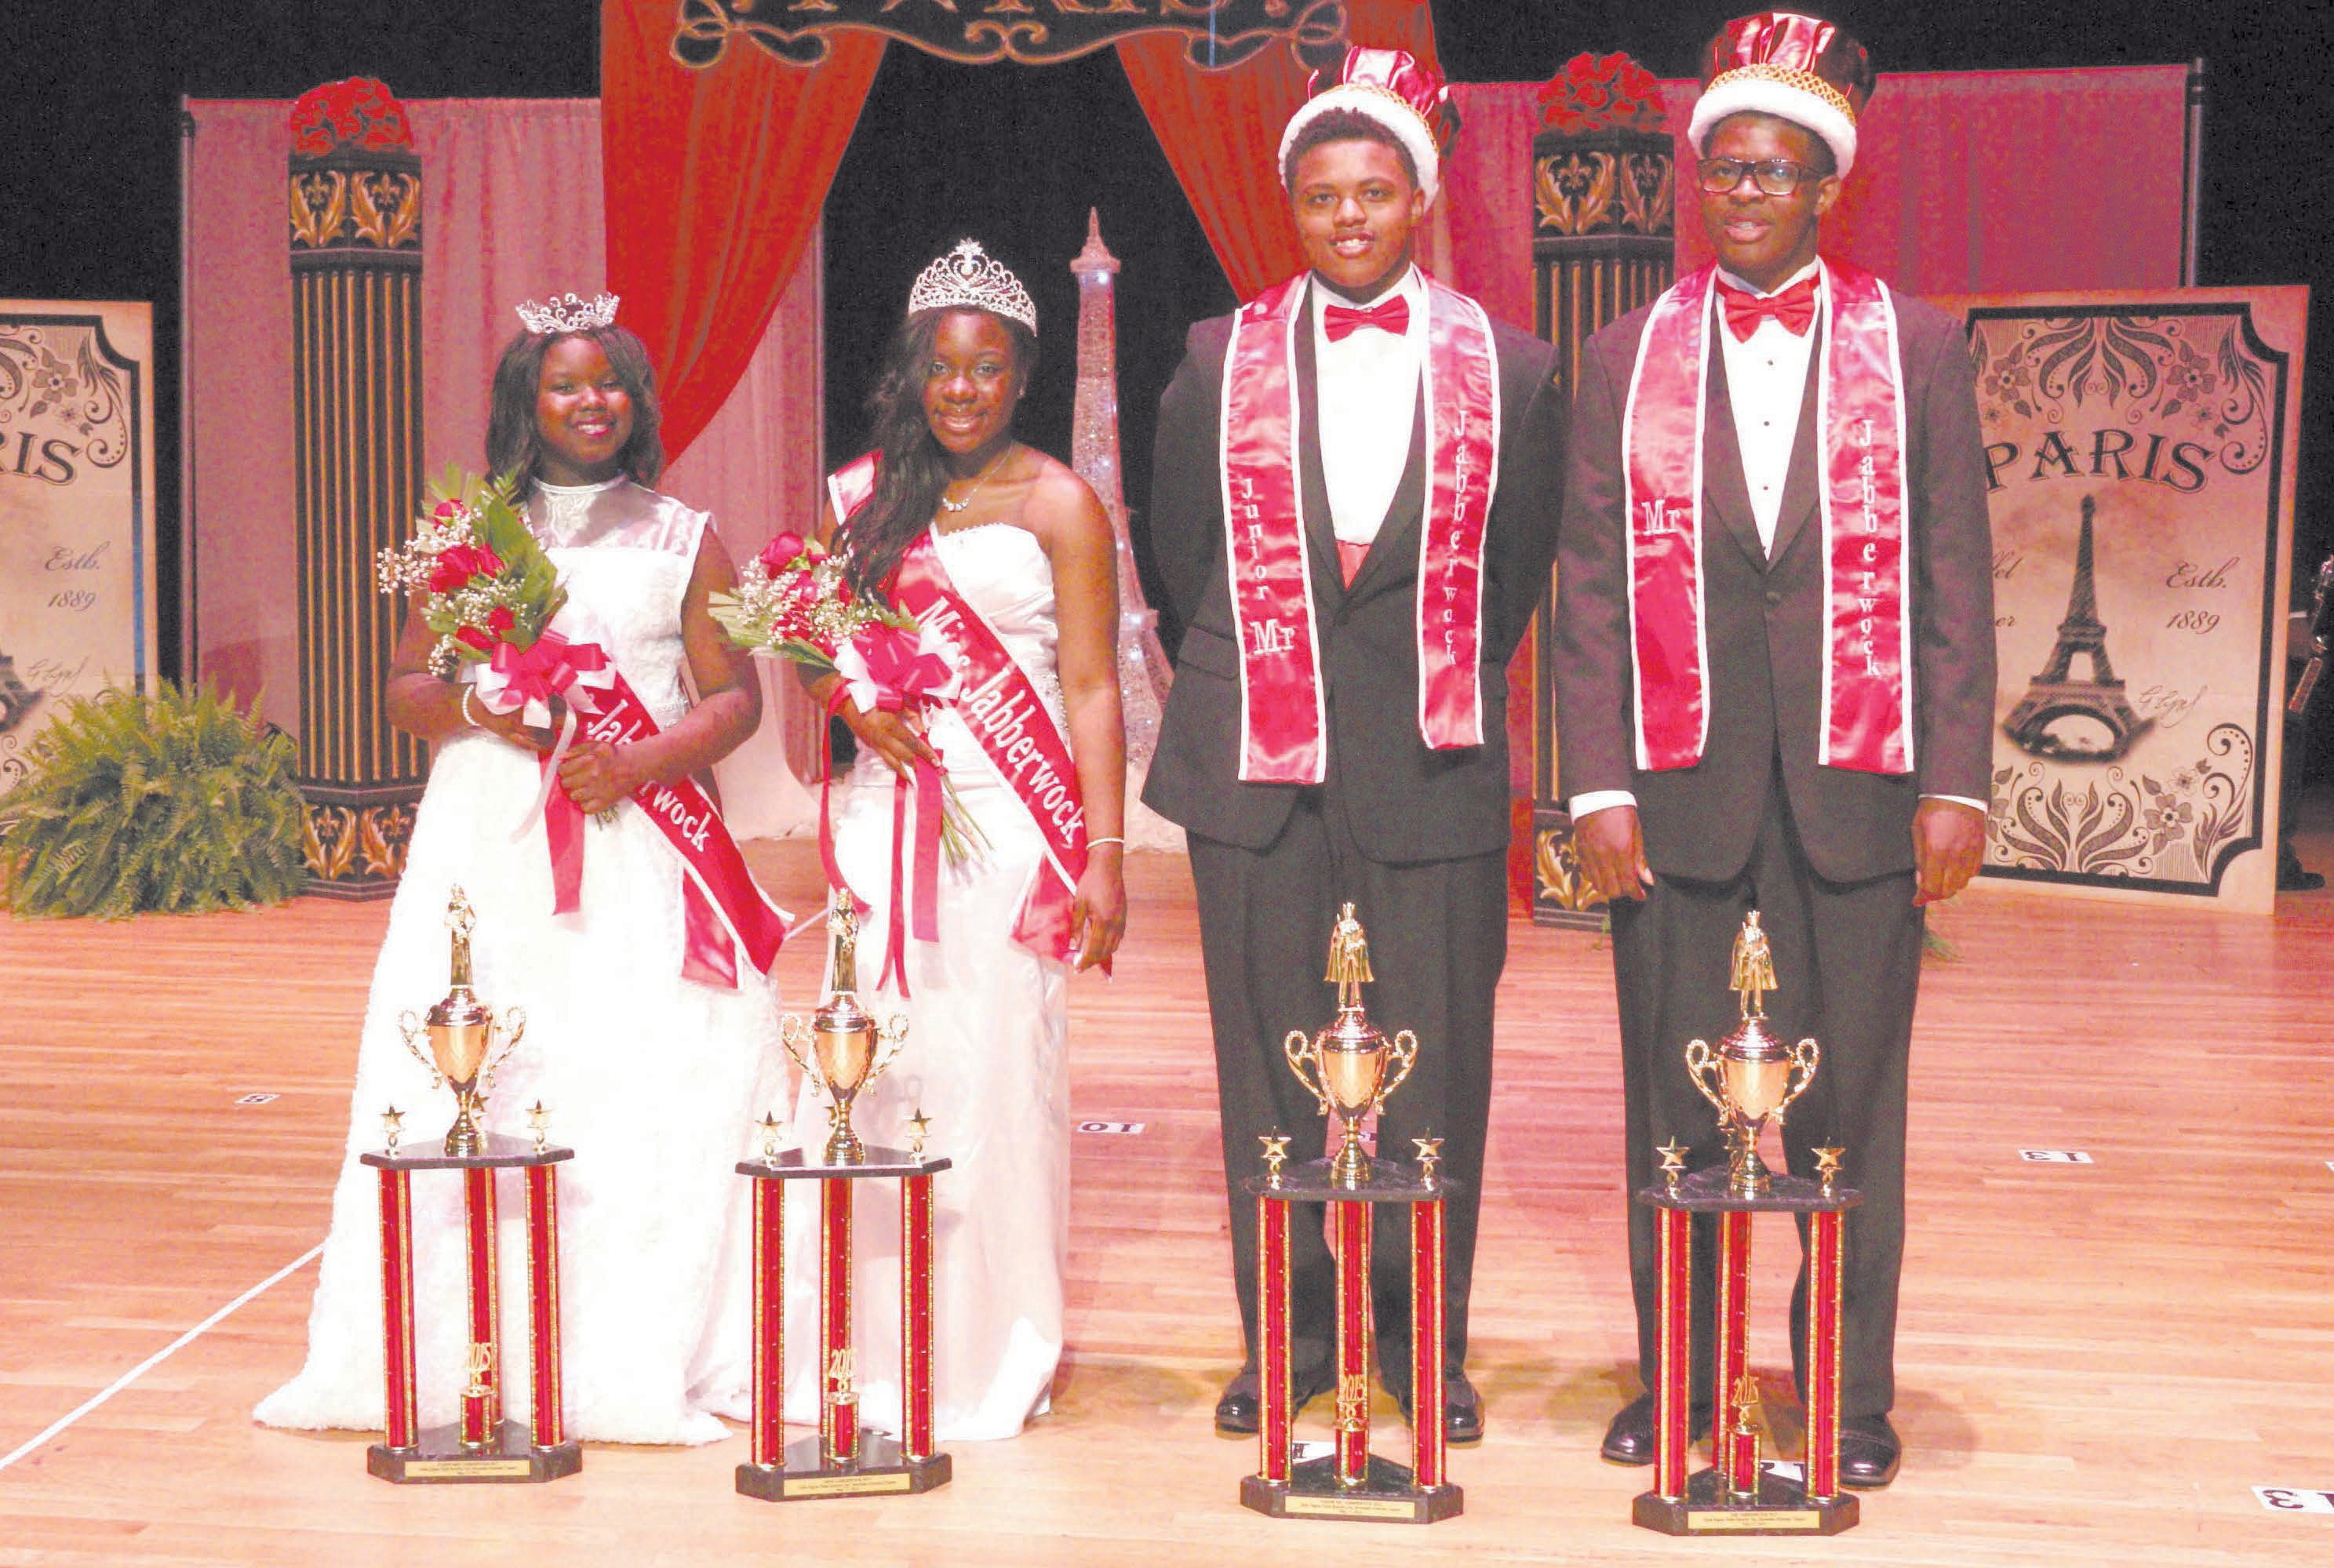 Winners, Jabberwock 2015. L-R: Junior Miss Jabberwock-- Kennedi Brown; Miss Jabberwock--Ji'Kayla Kent; Junior Mr. Jabberwock--Jahleel Larry; Mr. Jabberwock--Jamel Fogle-Washington. Sponsored by Delta Sigma Theta Sorority, Inc., Savannah Alumnae Chapter.